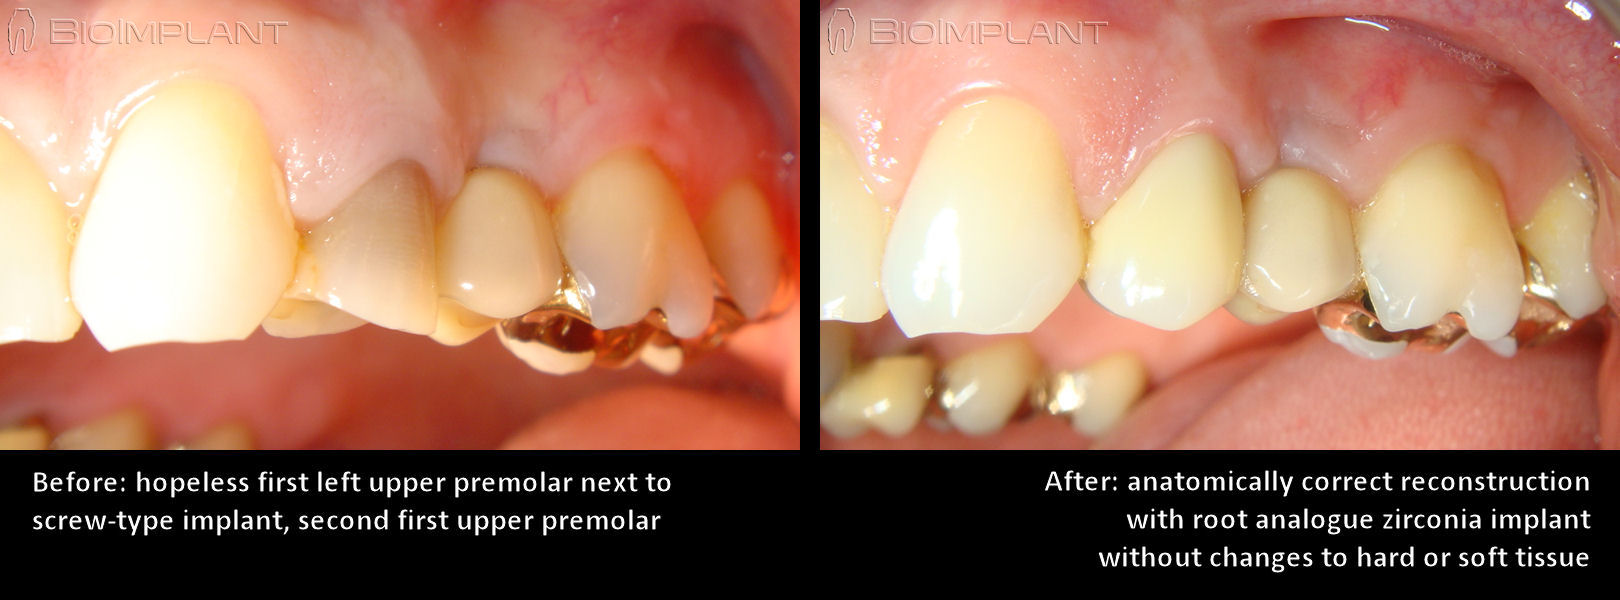 premolar_reconstruction_with_ceramic_anatomic_dental_implant